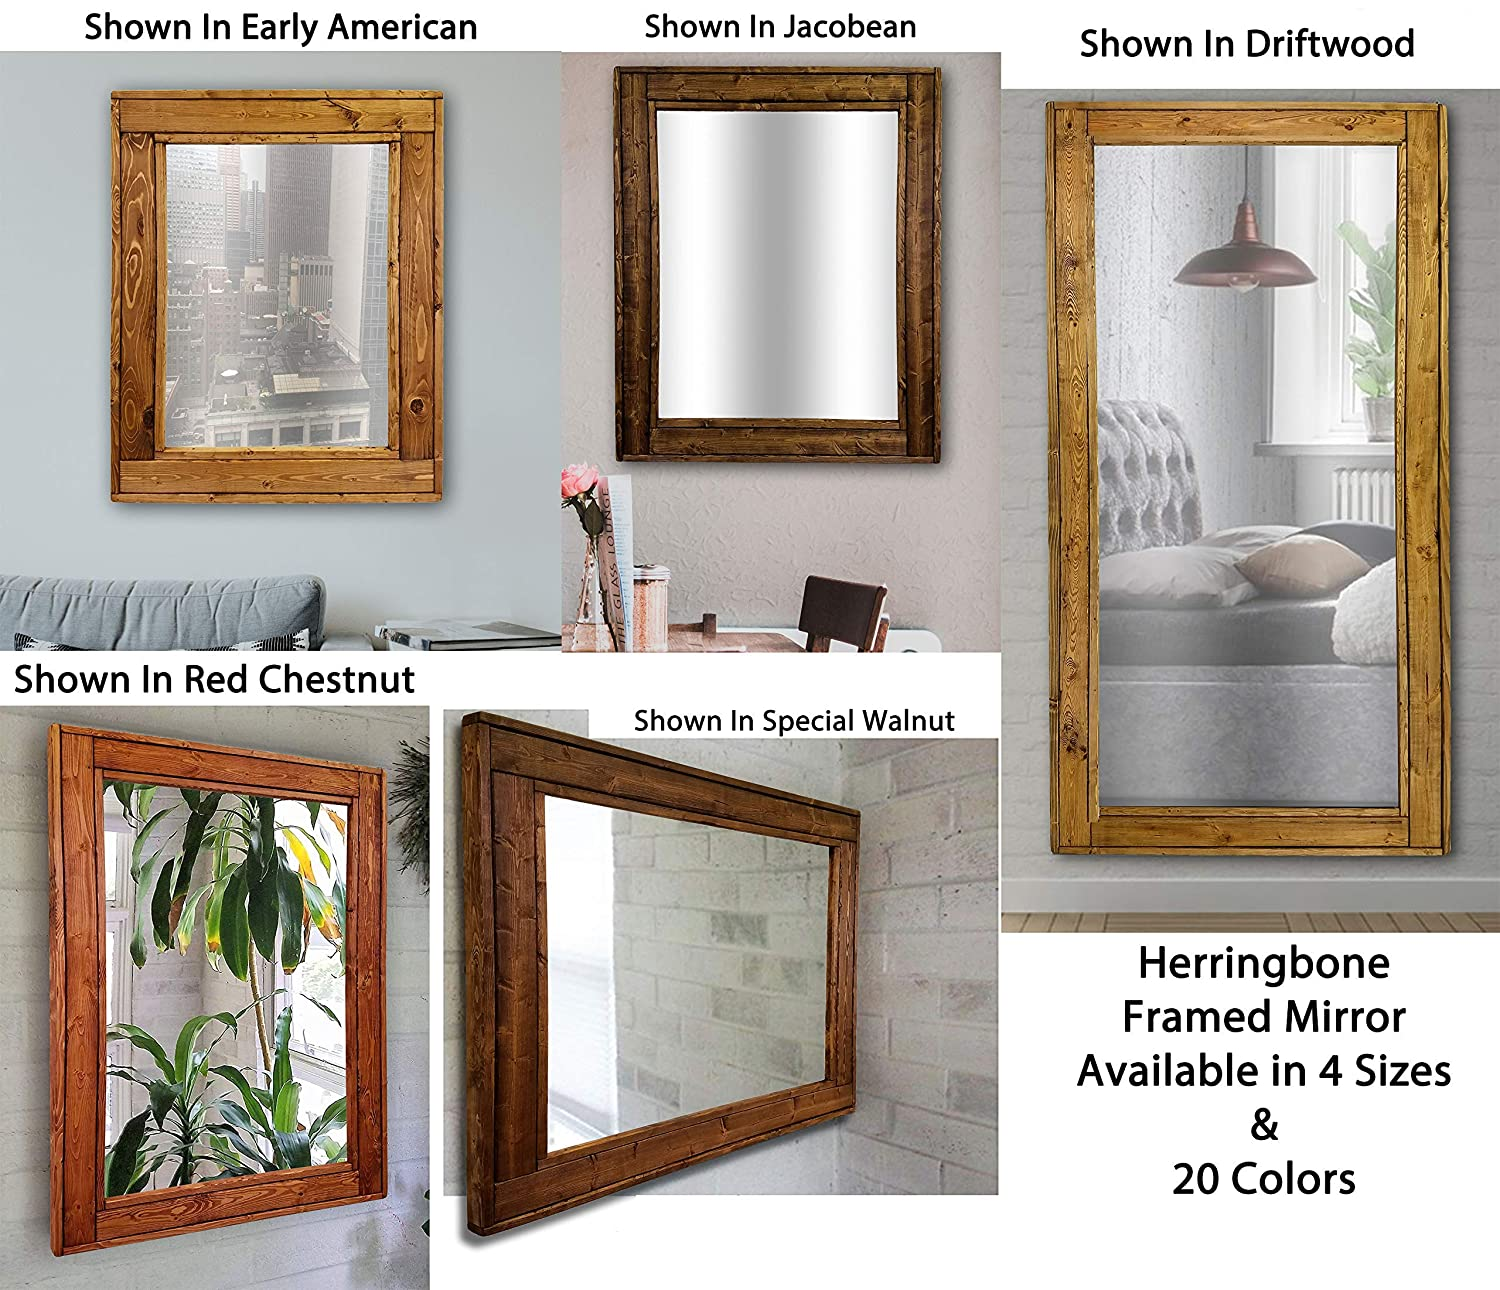 6e1b42381a96 ... Available in 4 Sizes and 20 Stain colors  Shown in Early American -  Large Framed Mirror - Wall Mirror Decorative - Home Decor Accents